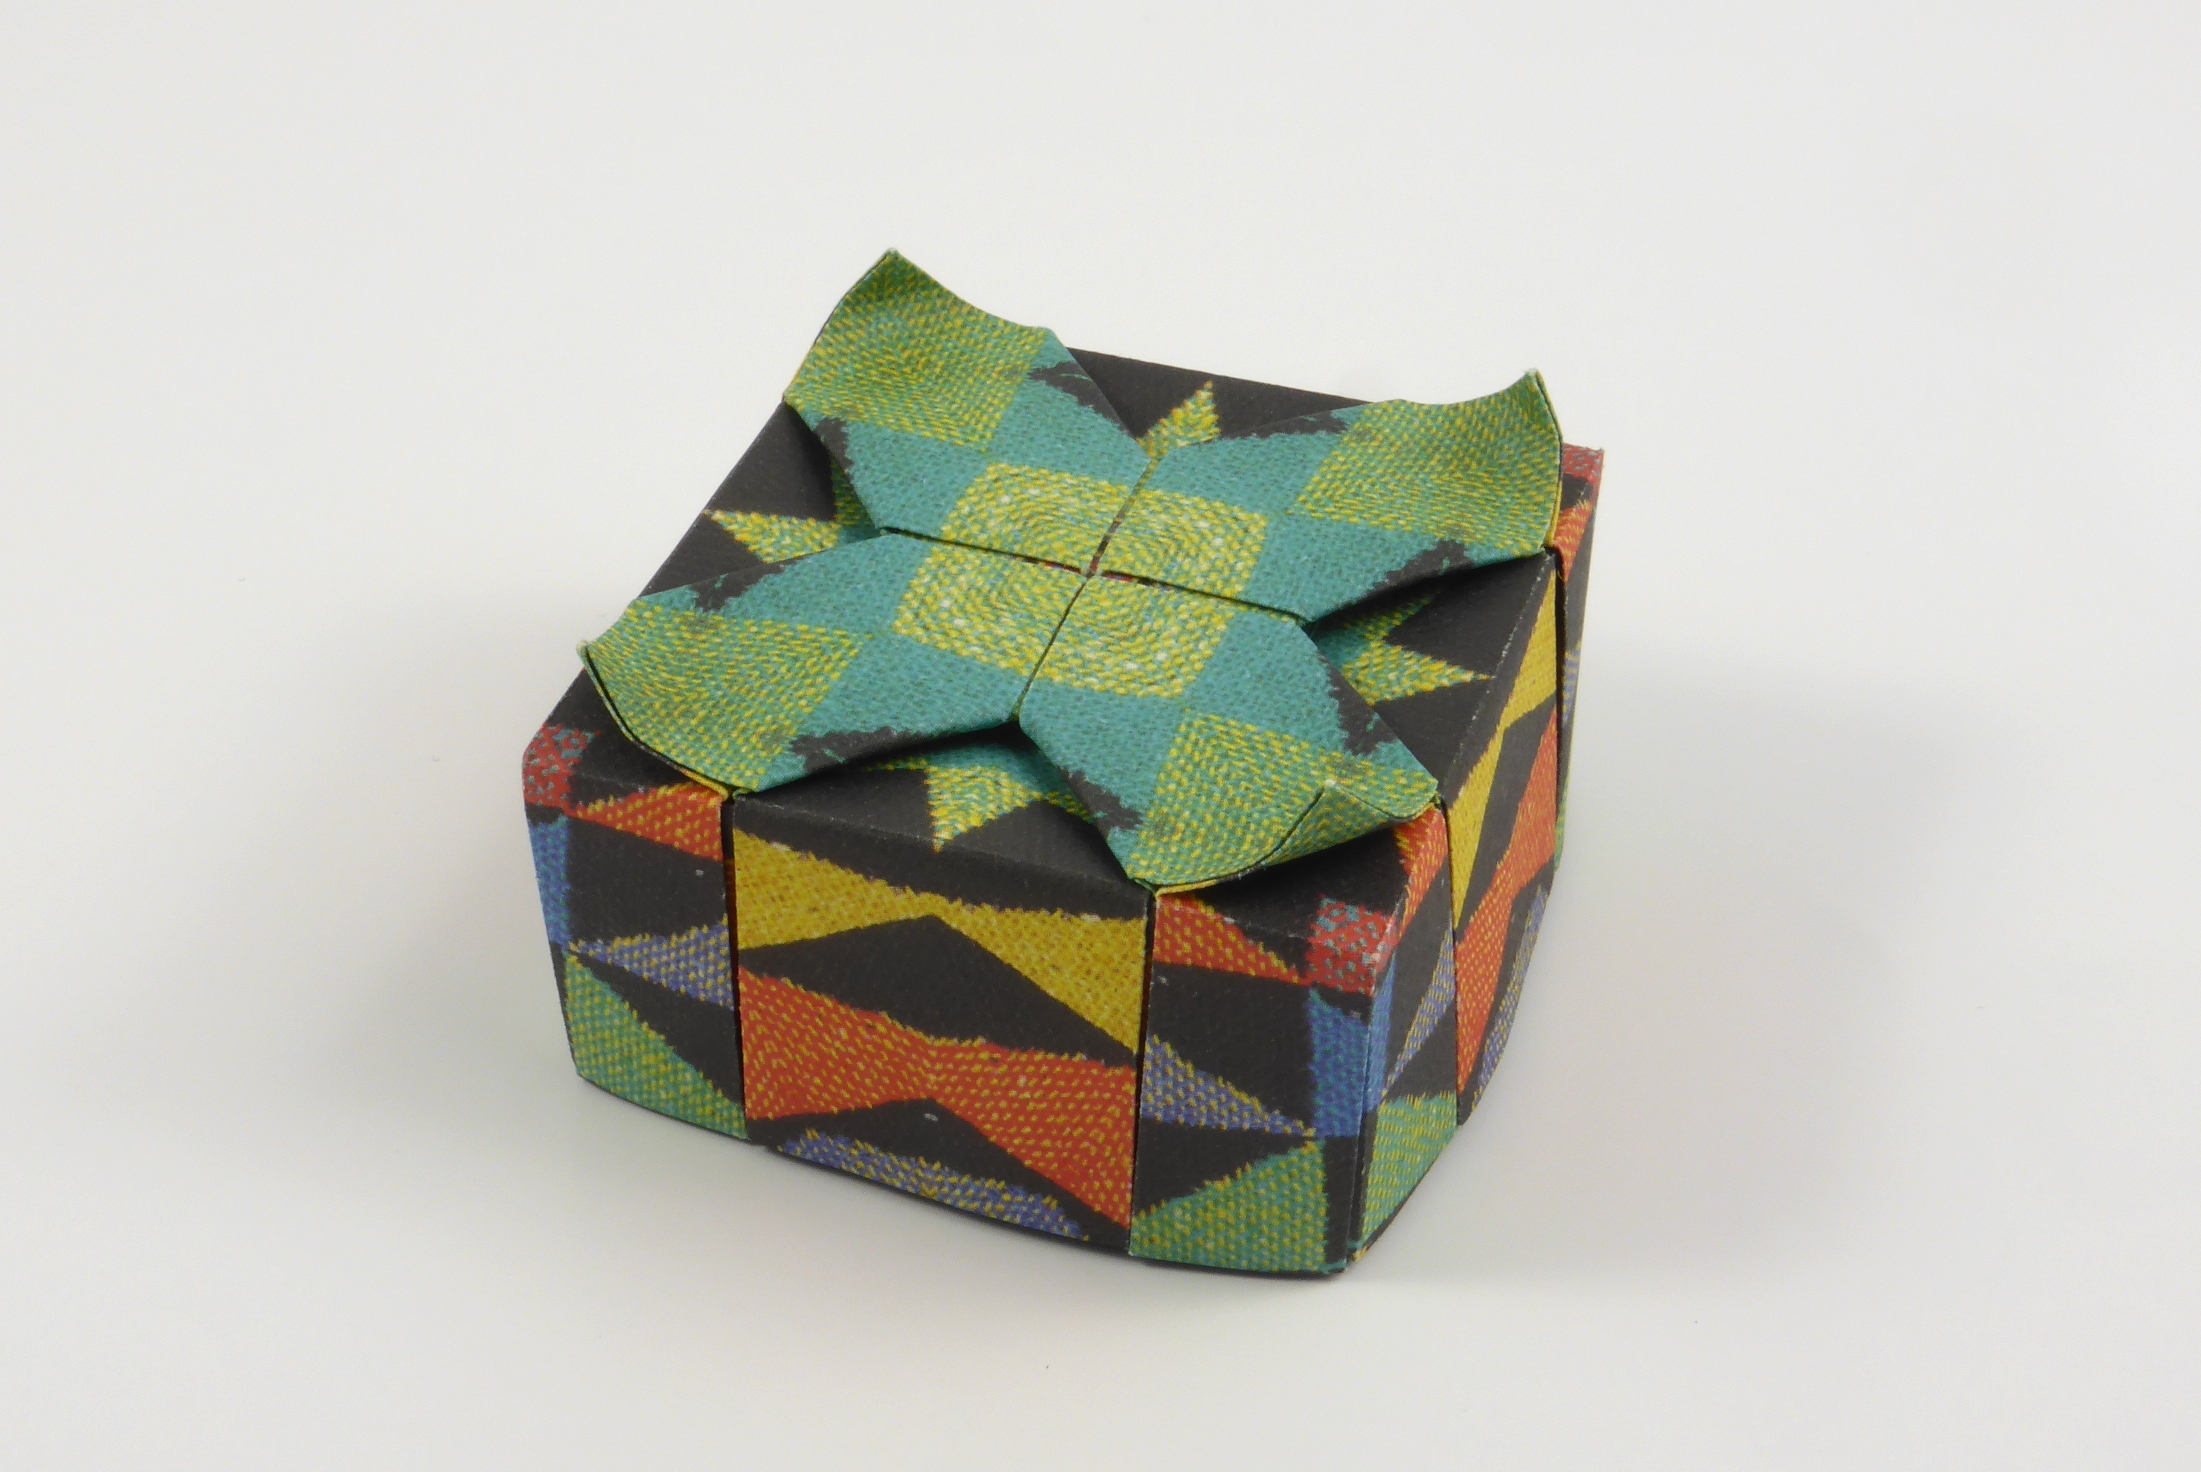 Origami Boxes Models Folded By Micha Kosmulski